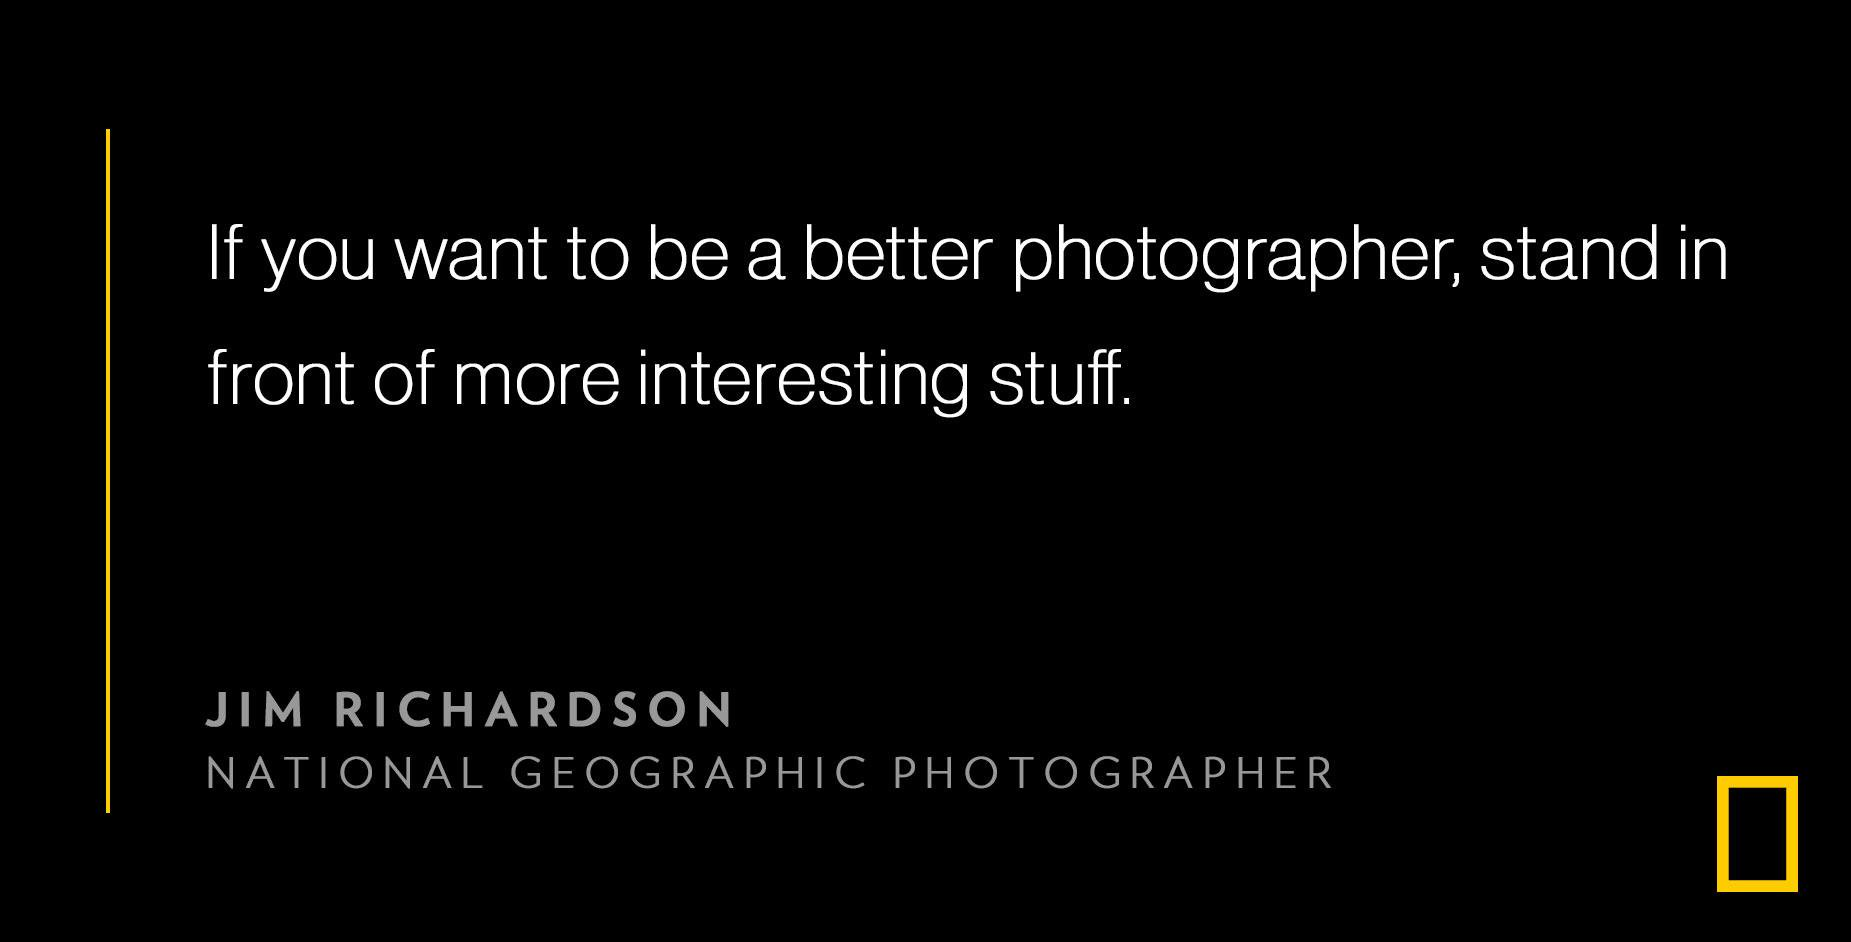 Photo tip of the week from @JimRichardsonNG https://t.co/0hoS041tVg